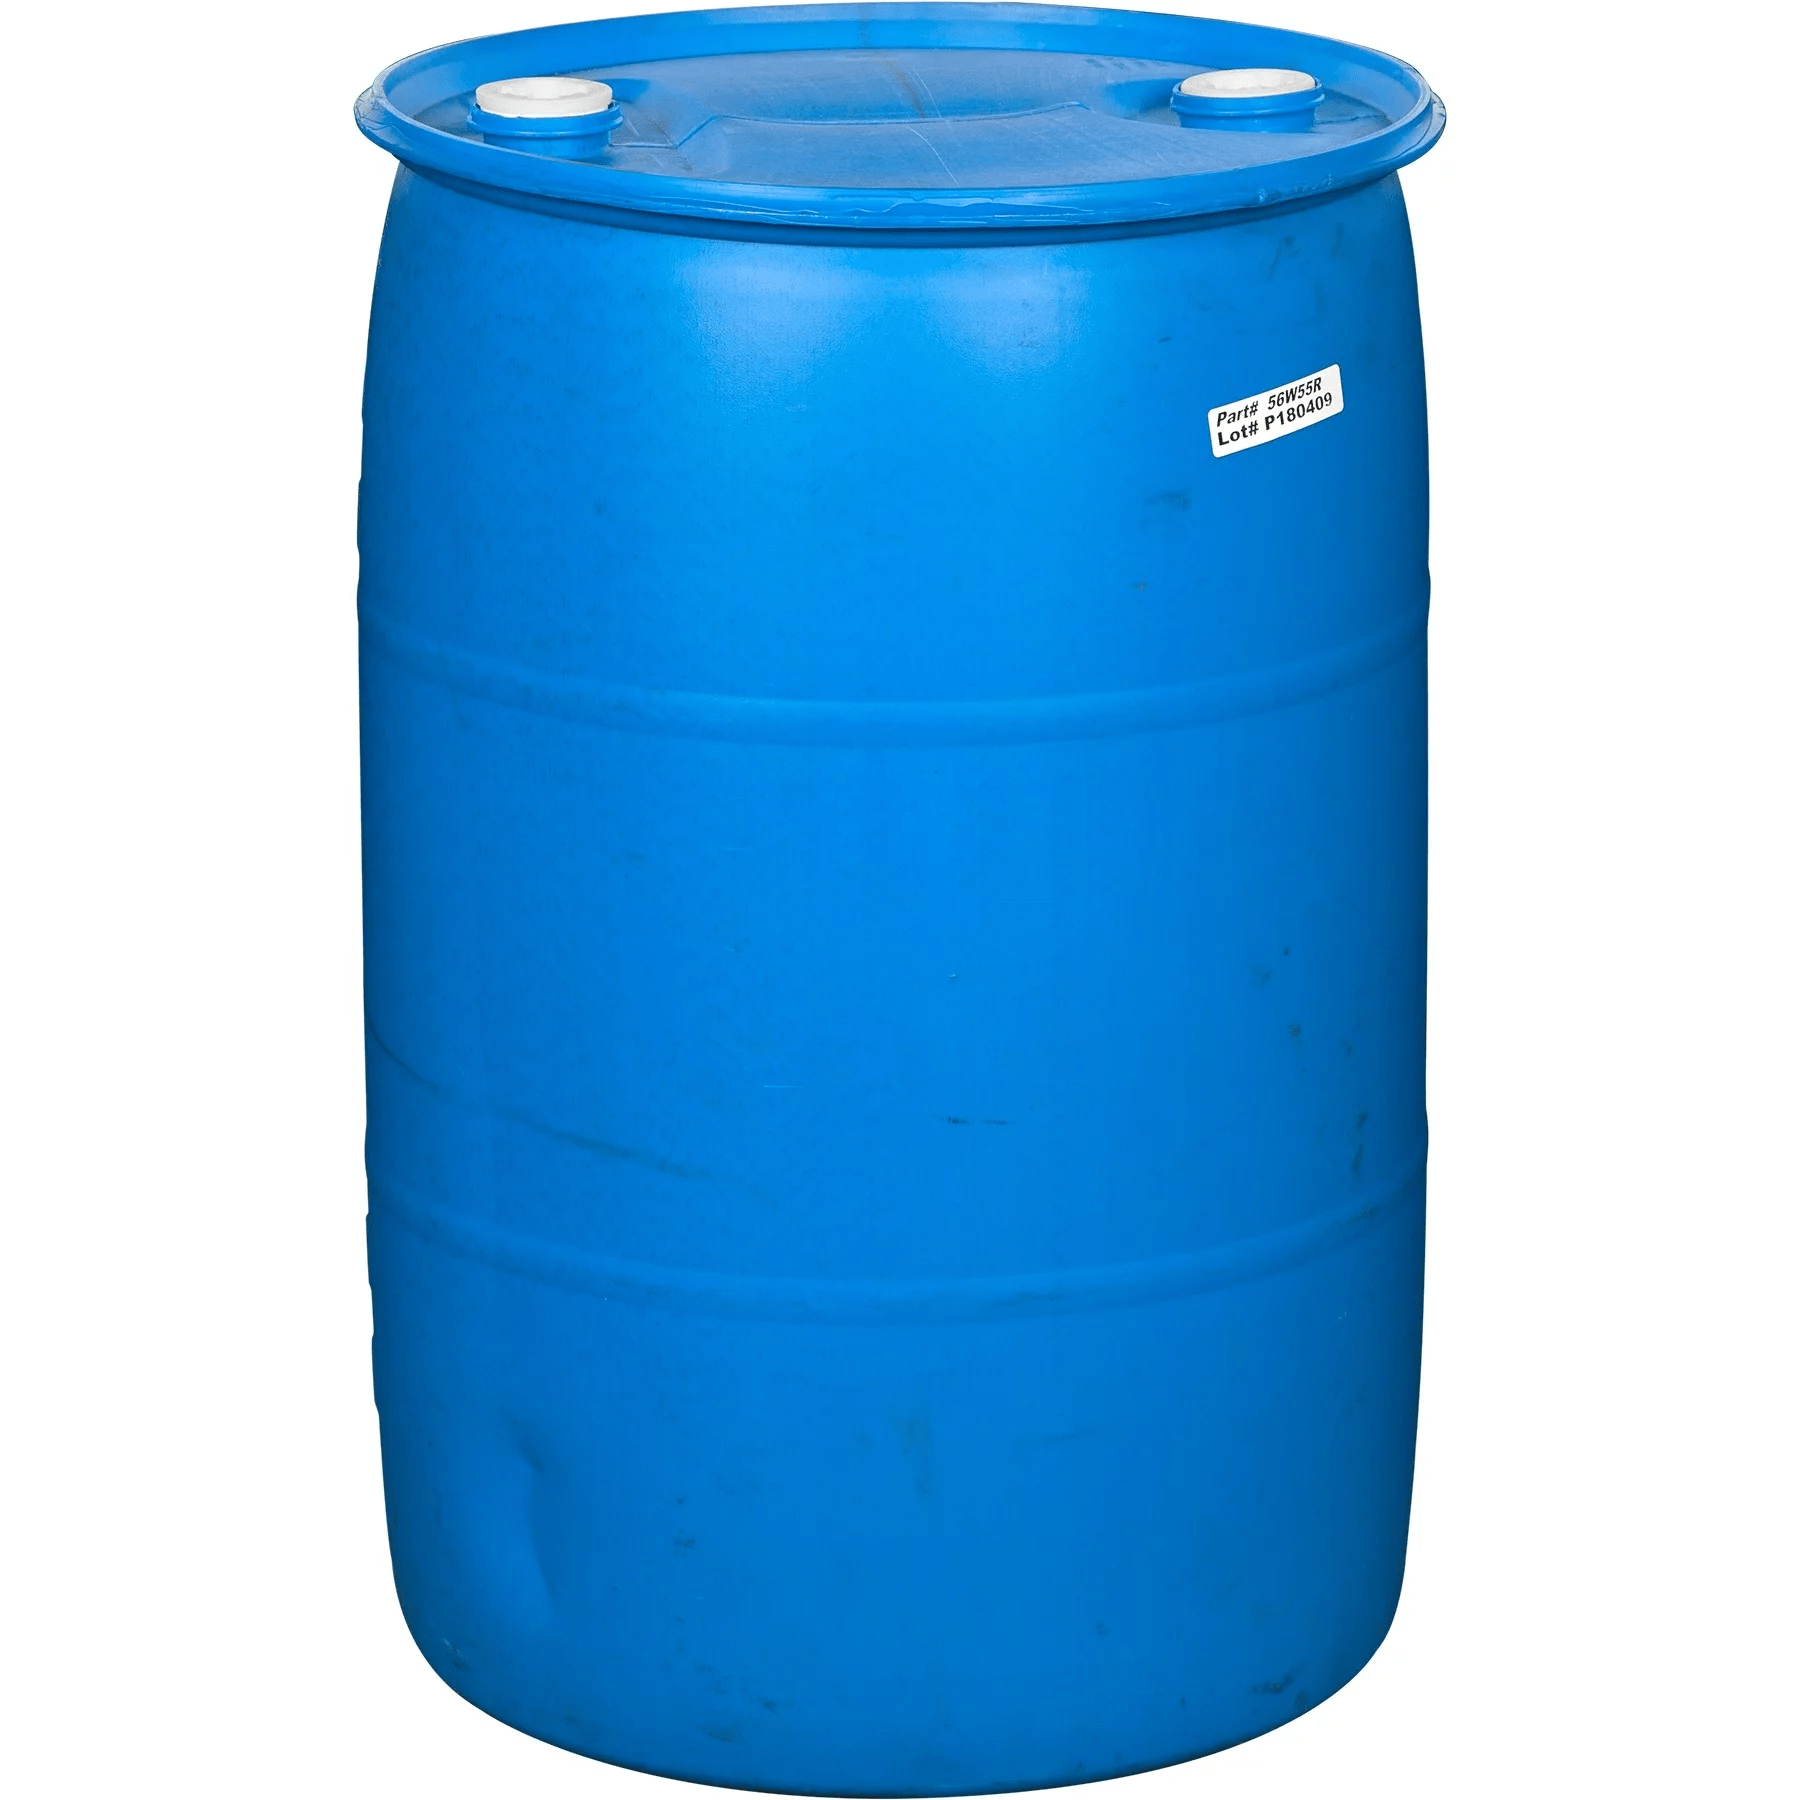 Spill Containment Polyethylene Drum - Blue (55 US gallon)